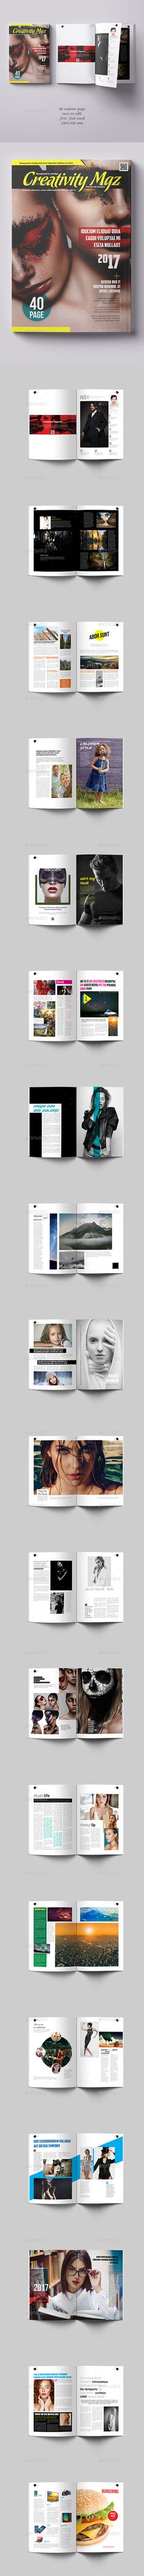 Creativity Magazine Template 40 Page by aykutkorkut Creativity Magazine Template 40 Page 40 custom pages · Free fonts used · Print ready (300 dpi, CMYK) · Separated layers (graph